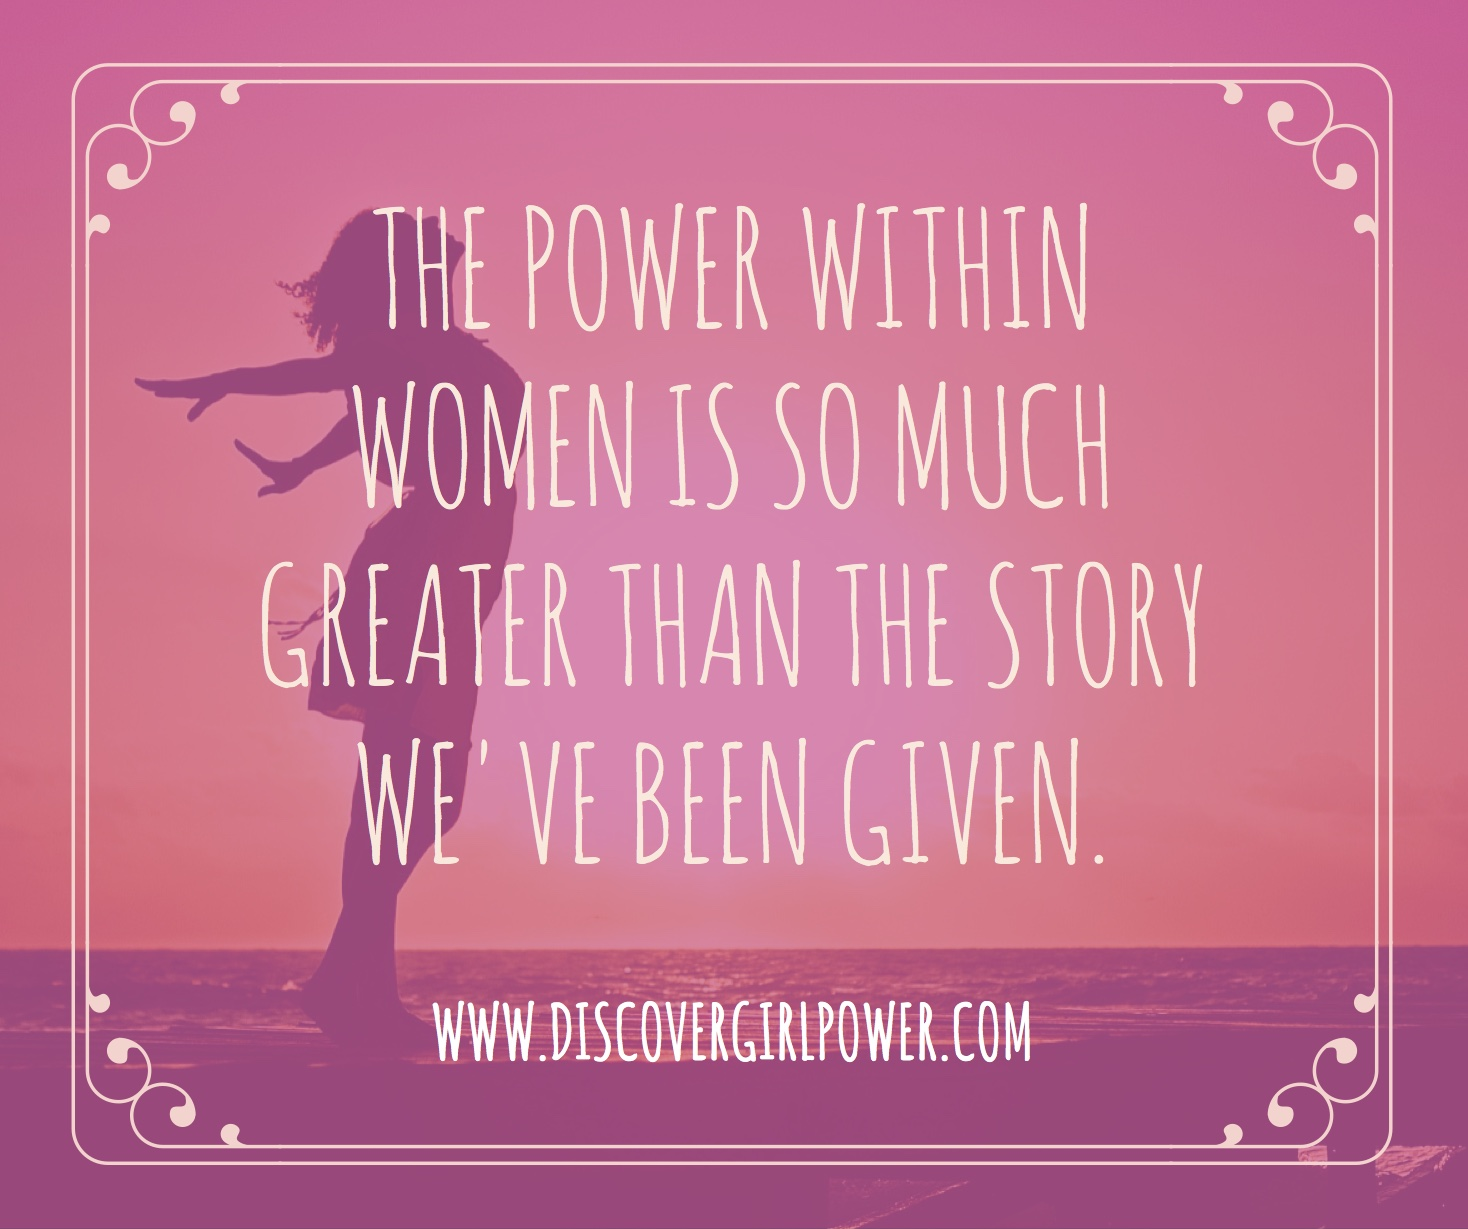 Discover-Girl-Power-Jeremy-Flagg-FB